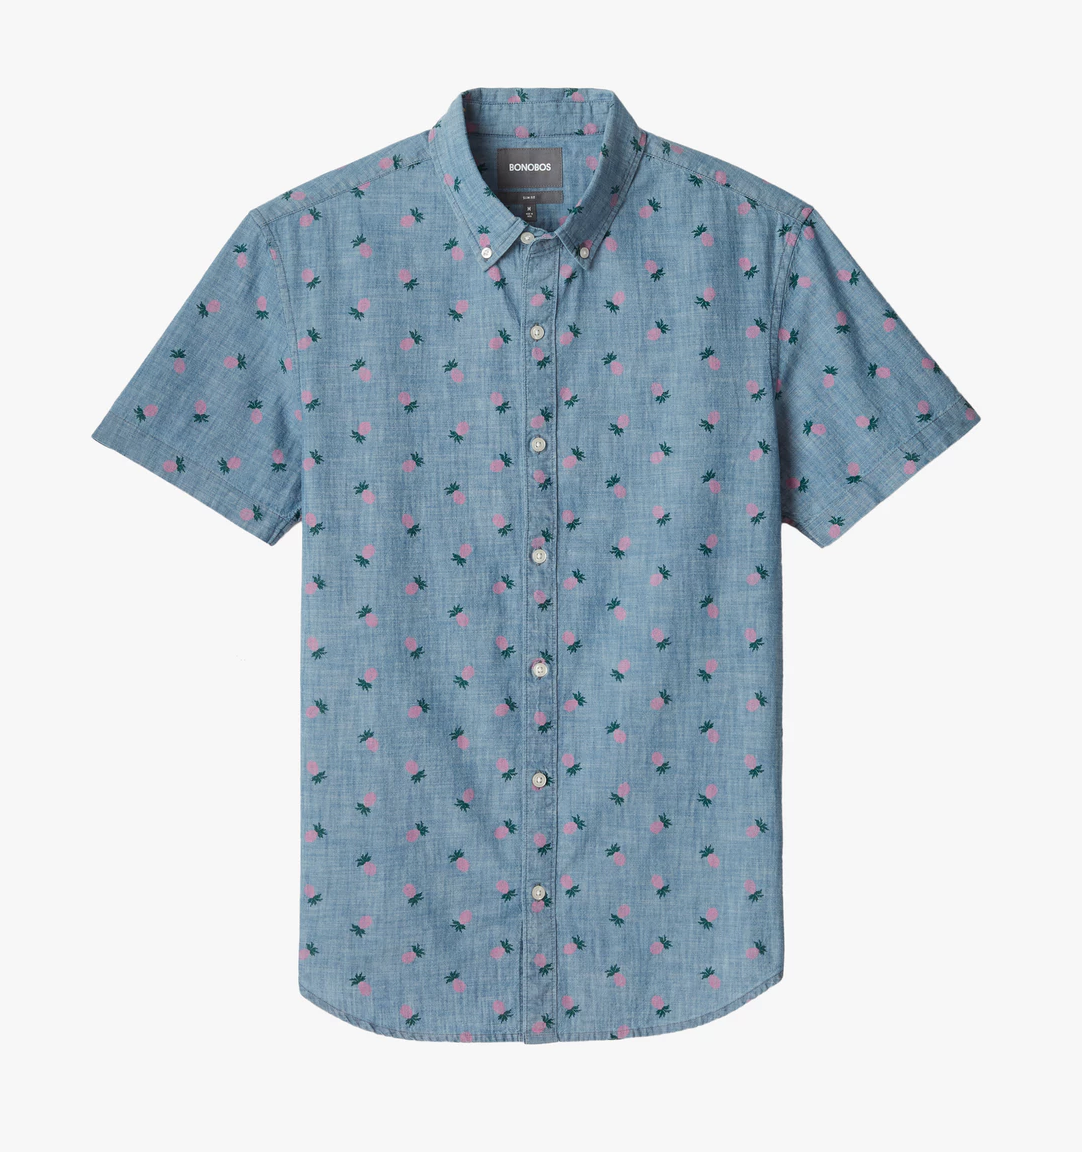 Bonobos Short Sleeve Riviera Shirt, Pink Pineapple